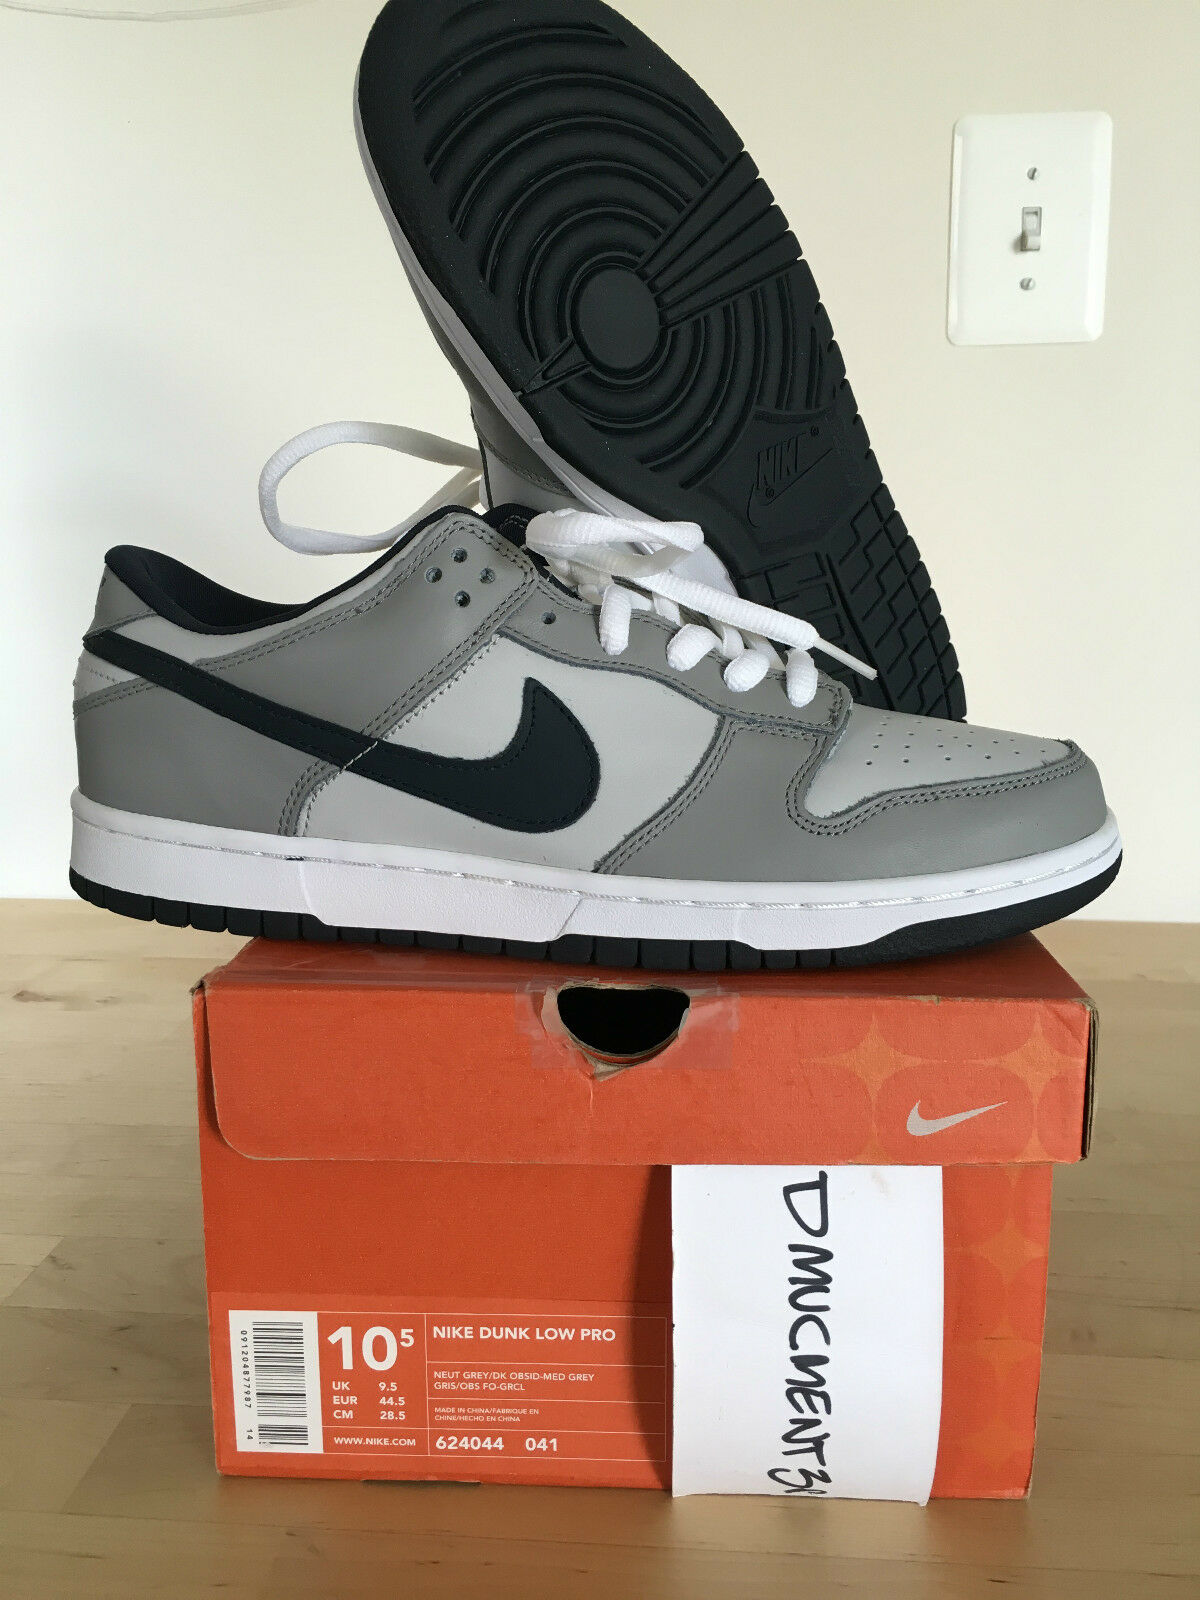 Nike Dunk Low Pro B Grey/Obsidian